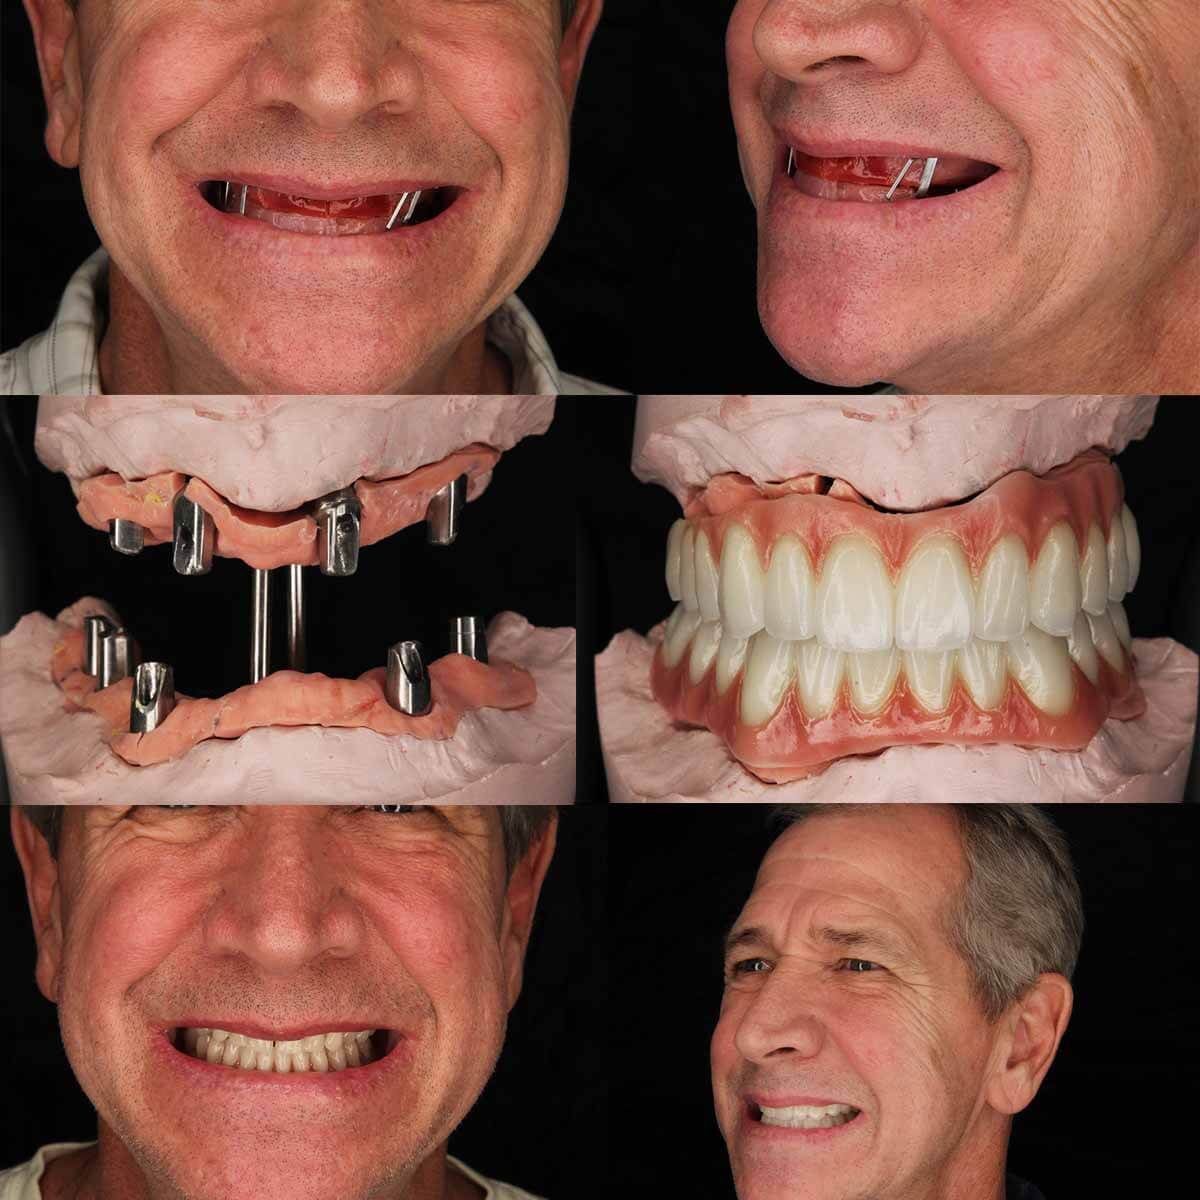 Mexico Dental Implants Cost